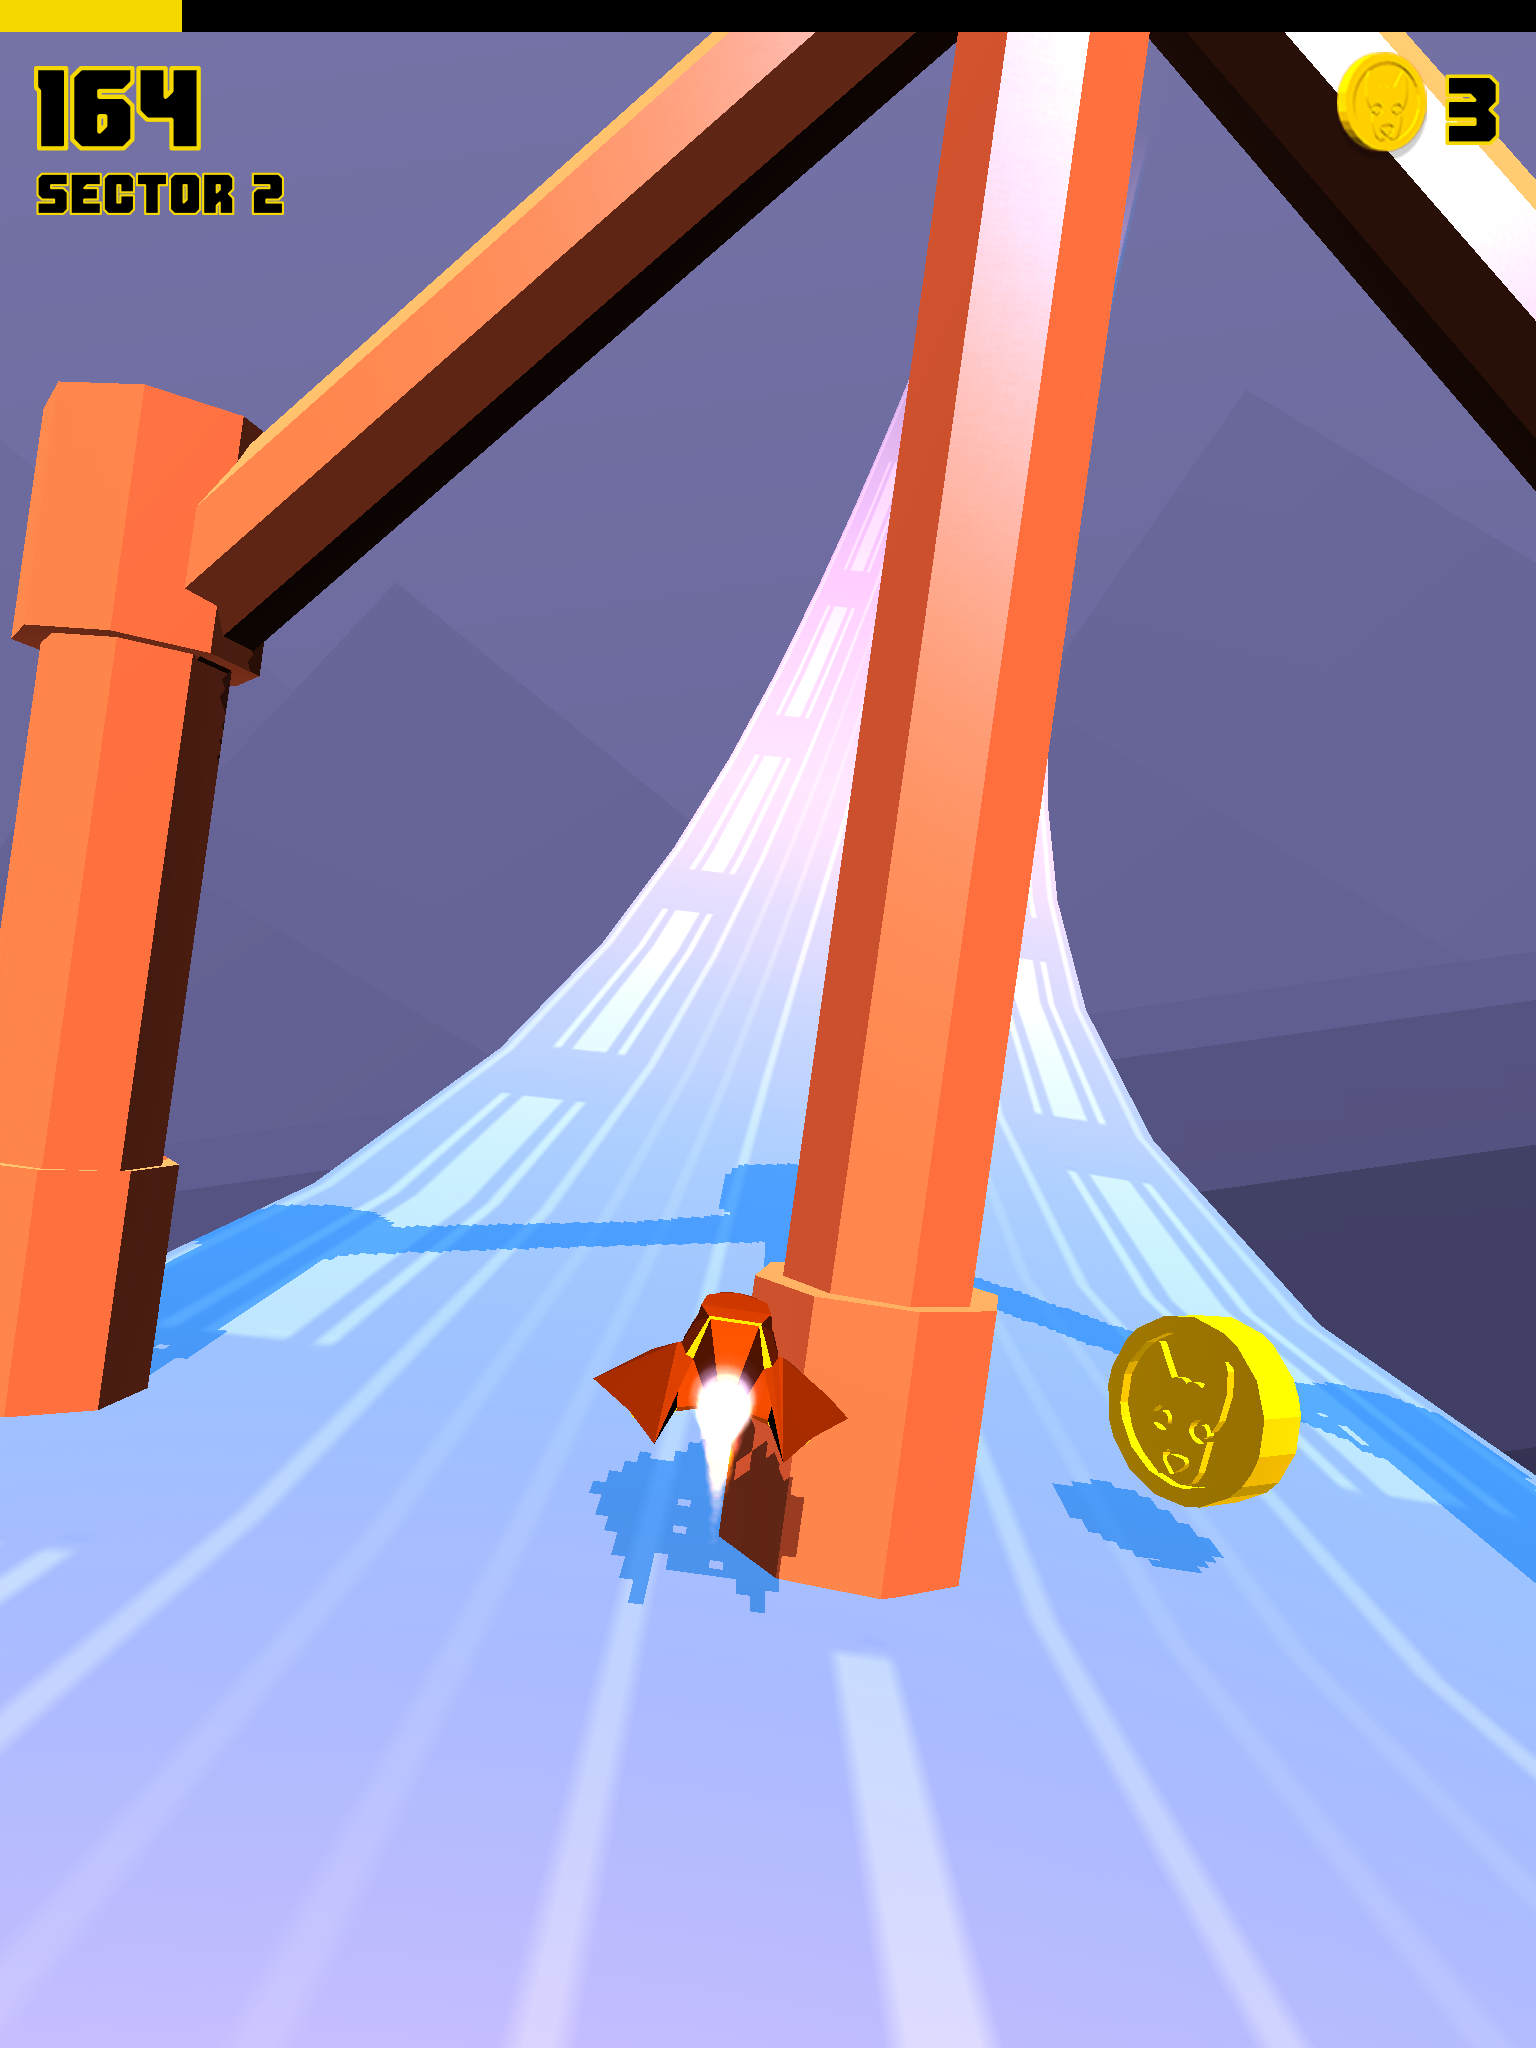 Hovercrash review - Wipeout for a new generation?